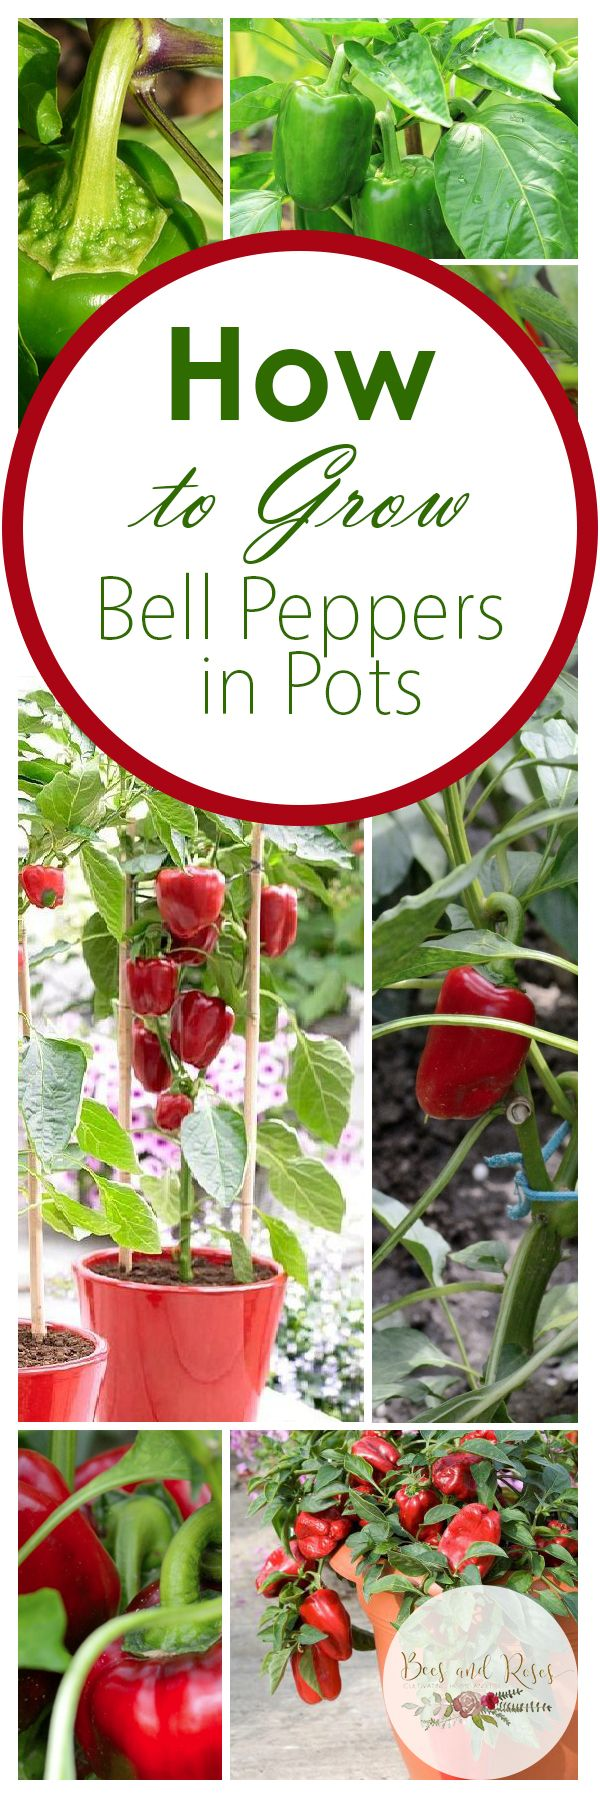 25  best Container vegetable gardening ideas on Pinterest   Growing  vegetables  Plants in pots and Growing vegetables in pots. 25  best Container vegetable gardening ideas on Pinterest